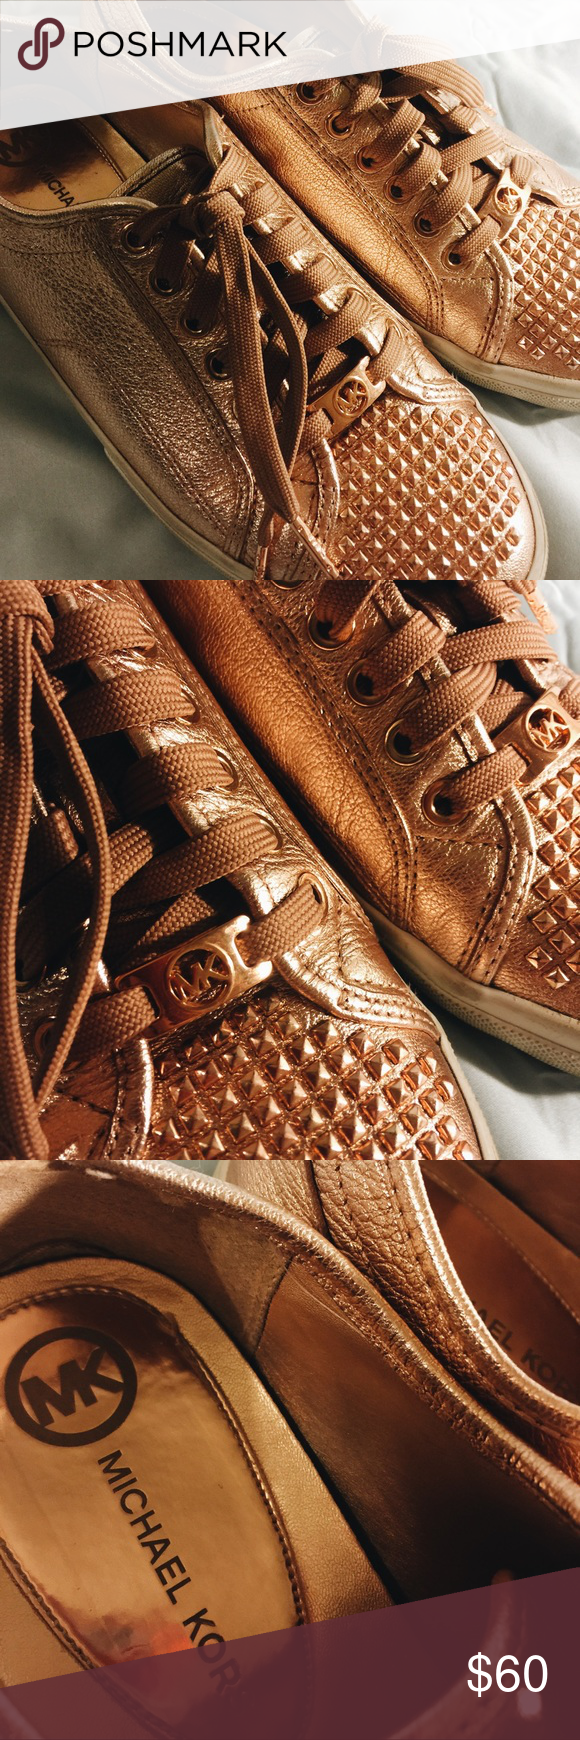 MICHAEL KORS x LO TOP SNEAKERS Beautiful rose gold MK sneakers. Comfy enough for every day! Michael Kors Shoes Sneakers